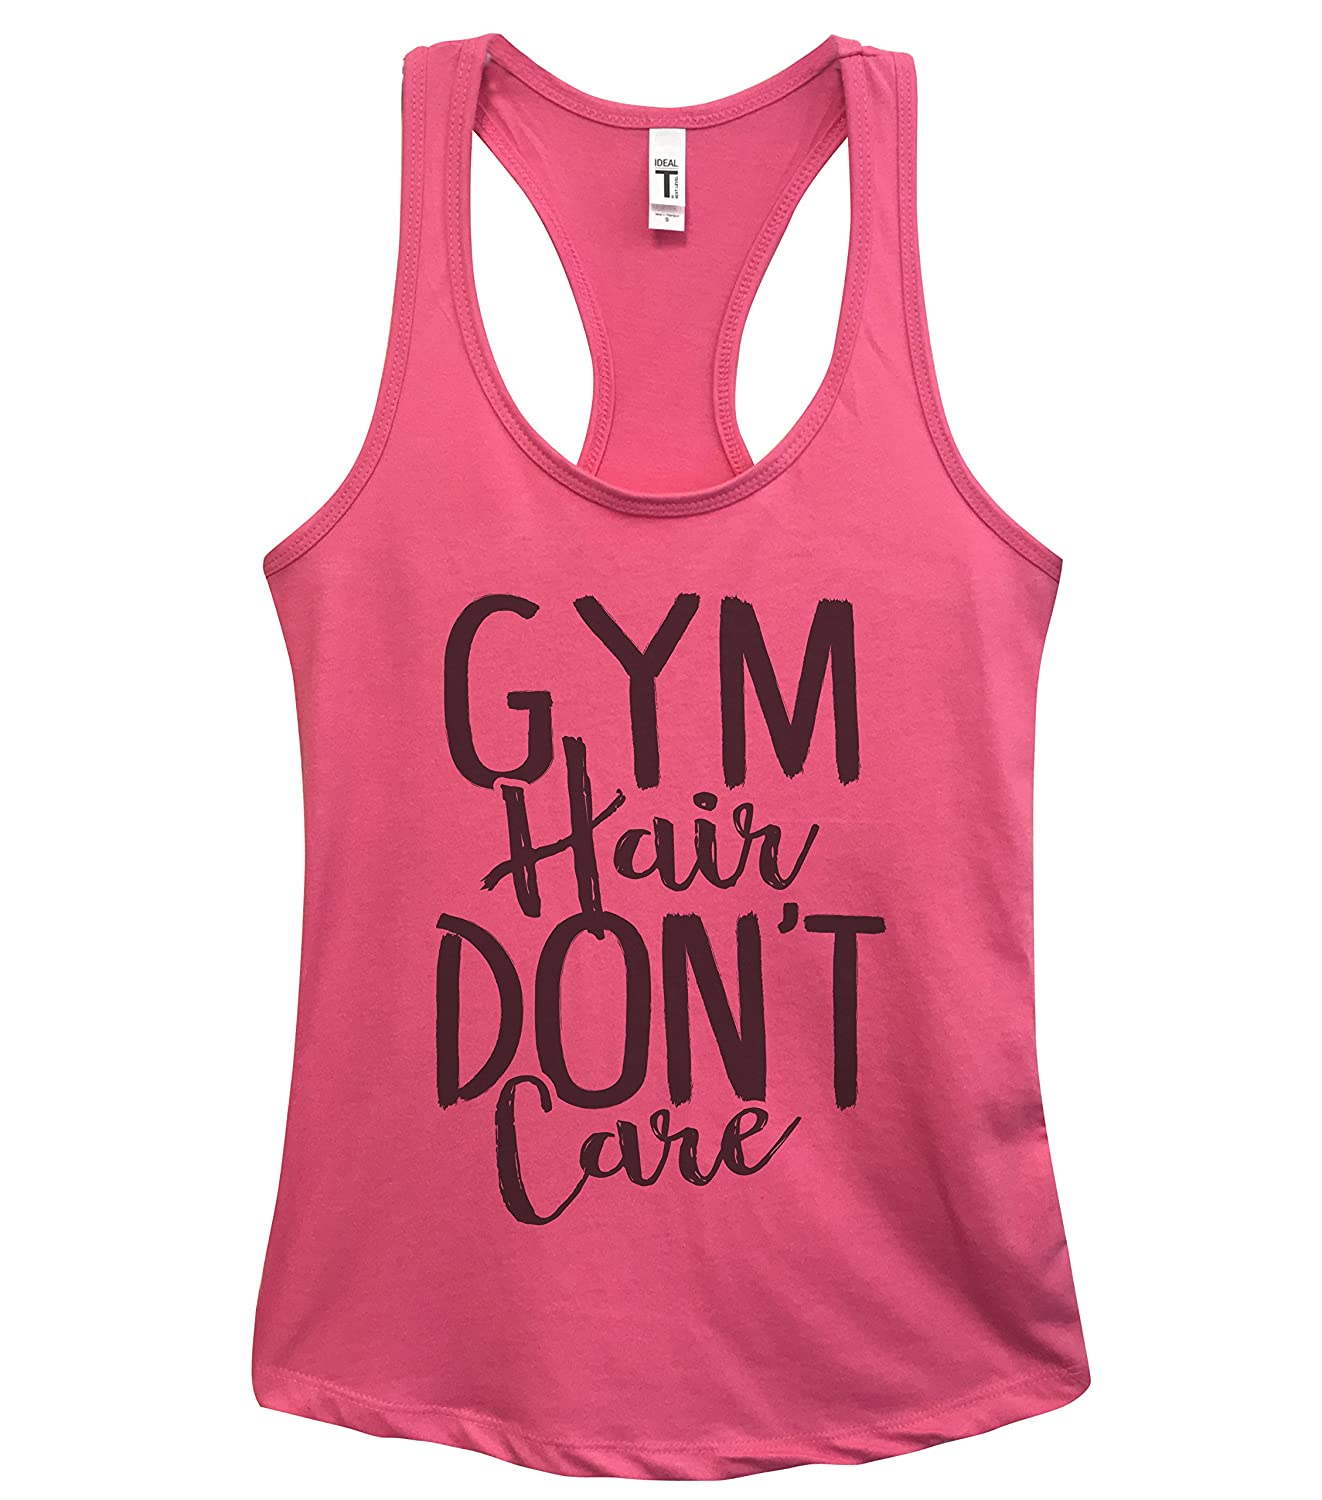 Funny Women's Work Out Tanks Gym Hair Dont Care - Yoga Royaltee Tank Tops